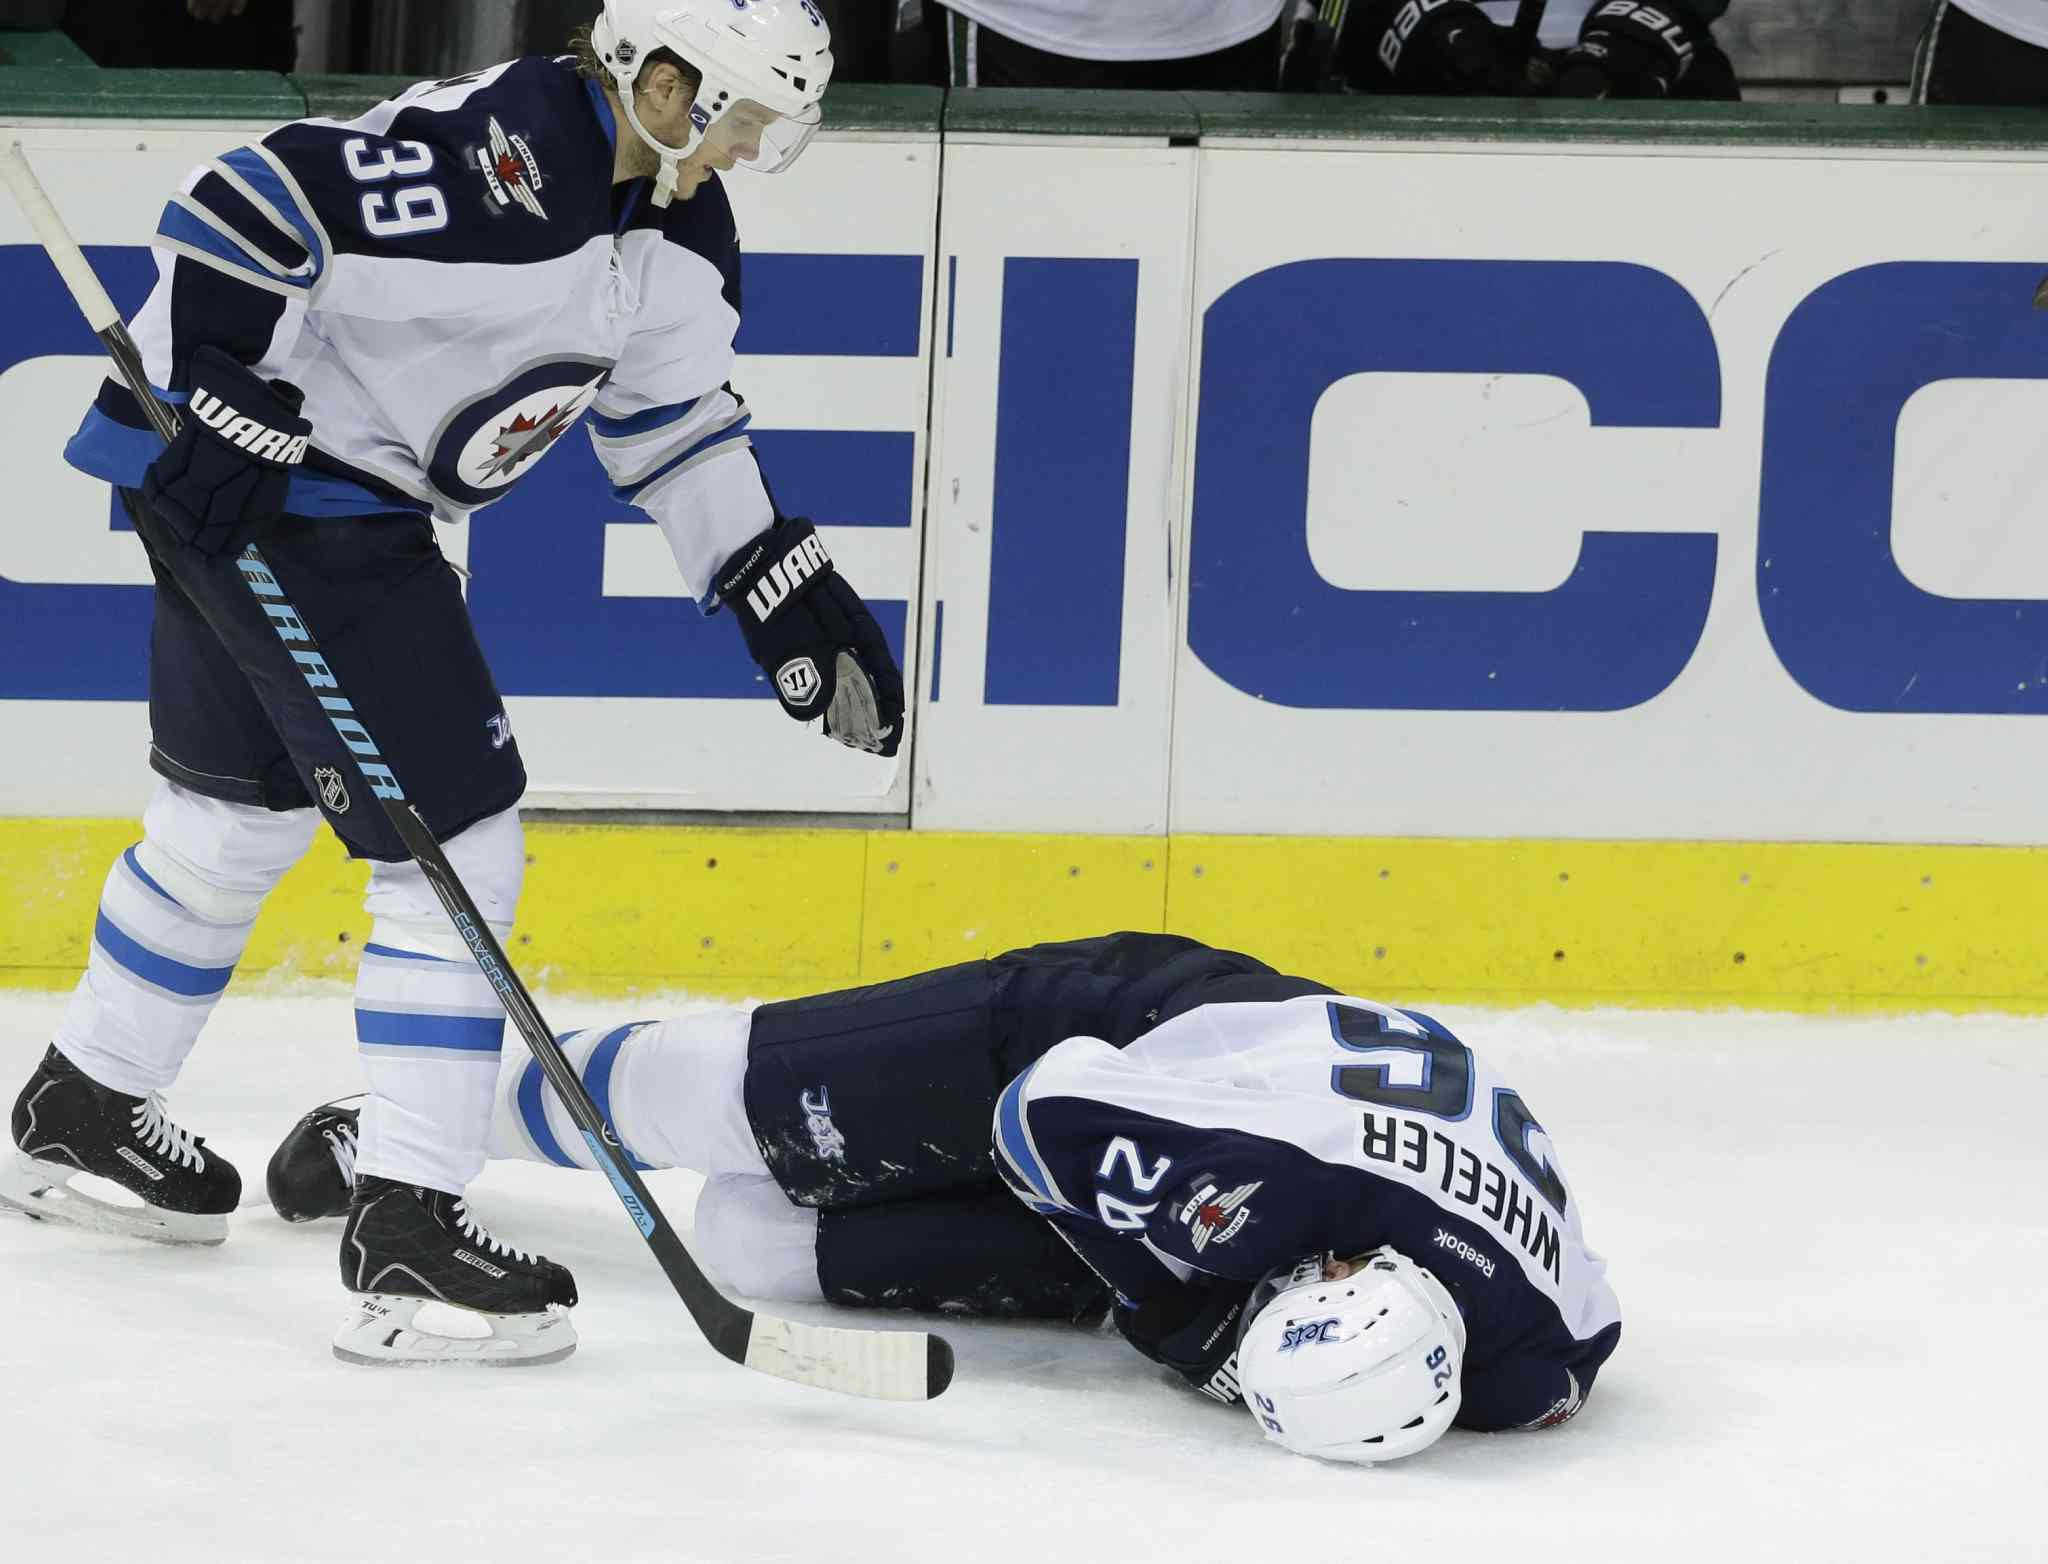 Winnipeg Jets defenceman Tobias Enstrom skates over to check on teammate Blake Wheeler after Wheeler was knocked into an open gate at the Stars' bench in the third period. Wheeler was injured on the play but returned for a shift late in the game.